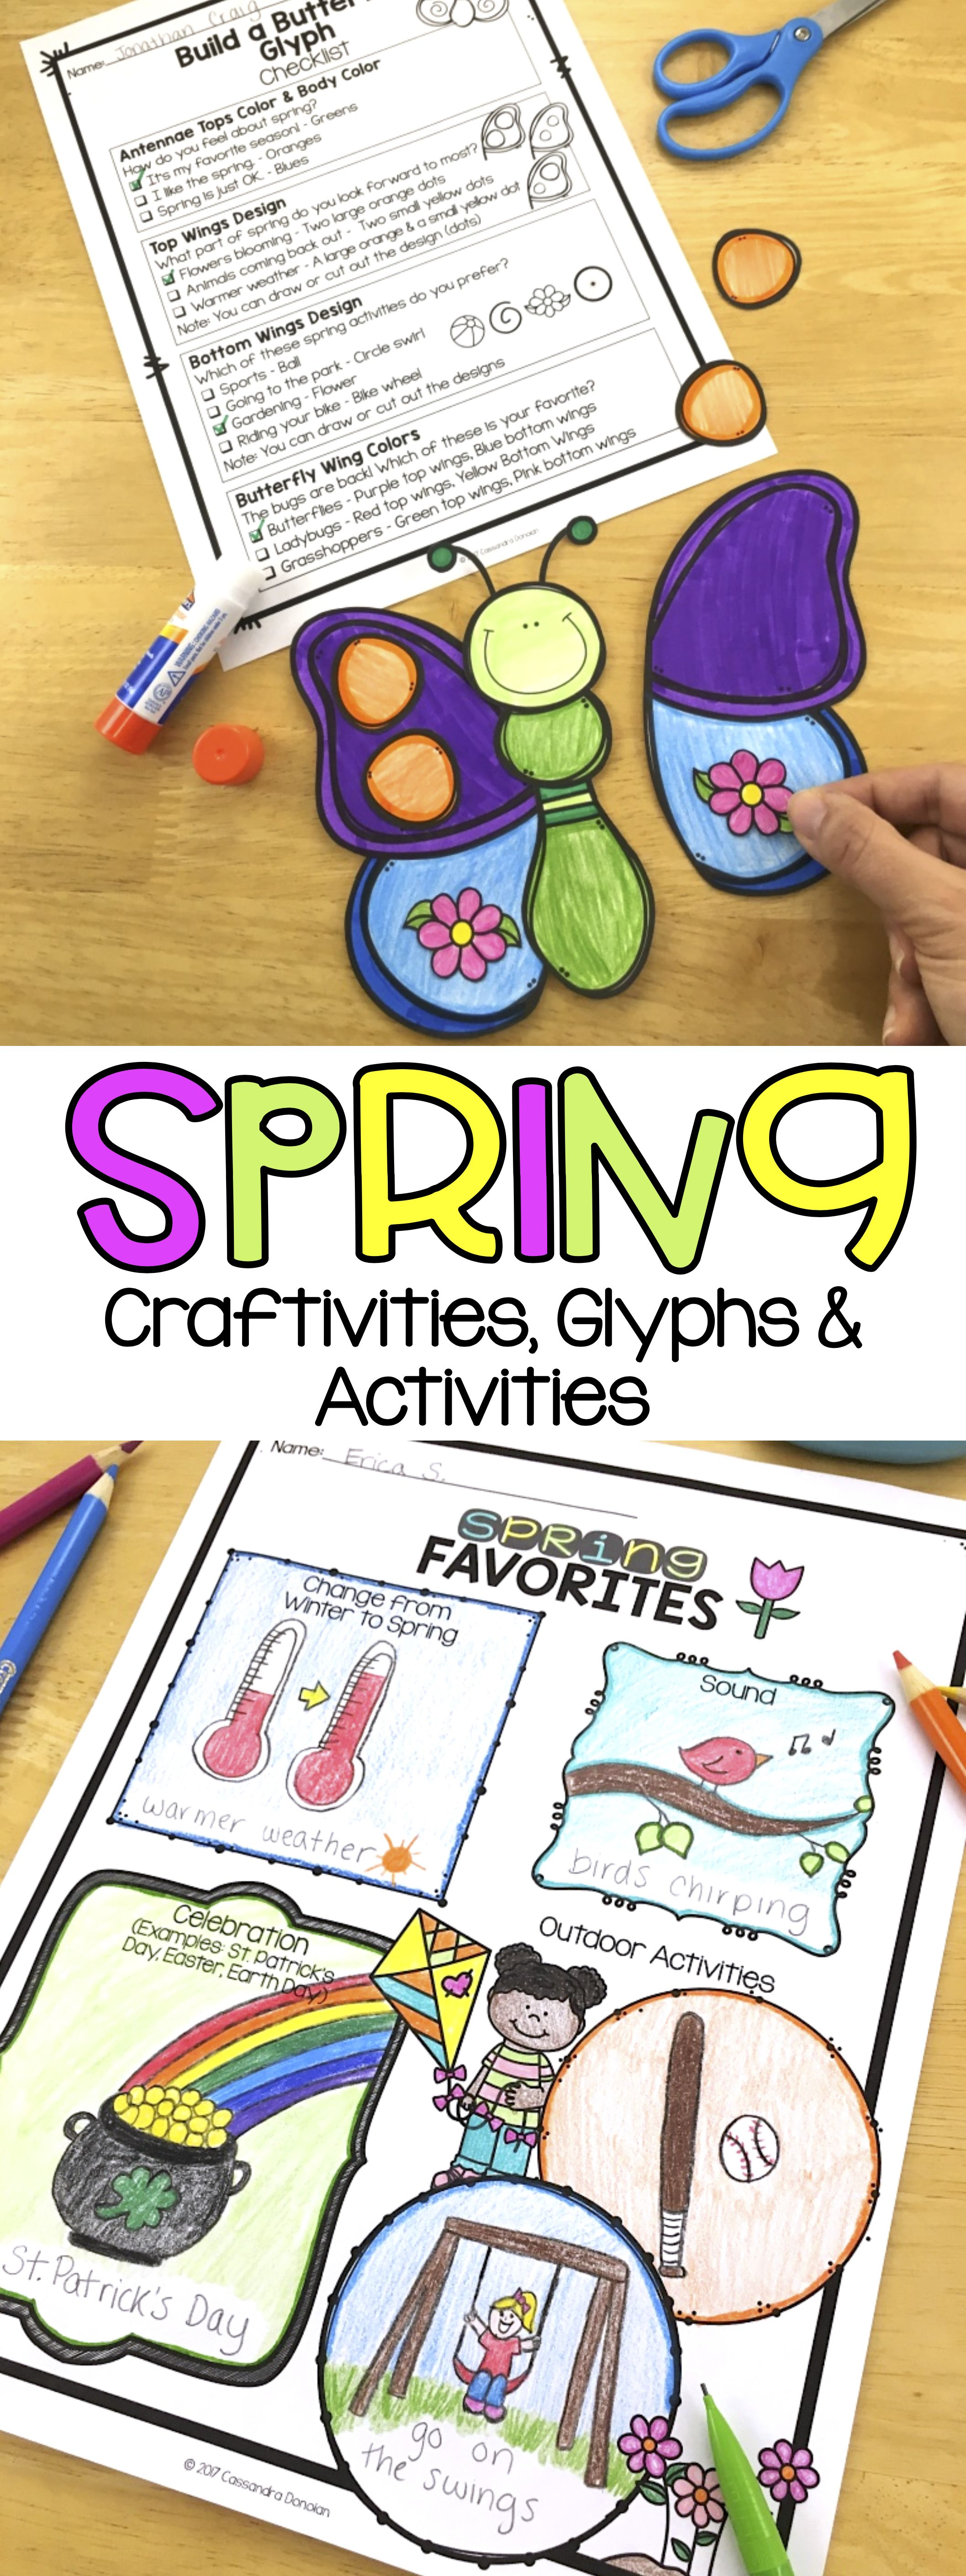 Spring Activities And Glyphs Spring Crafts Spring